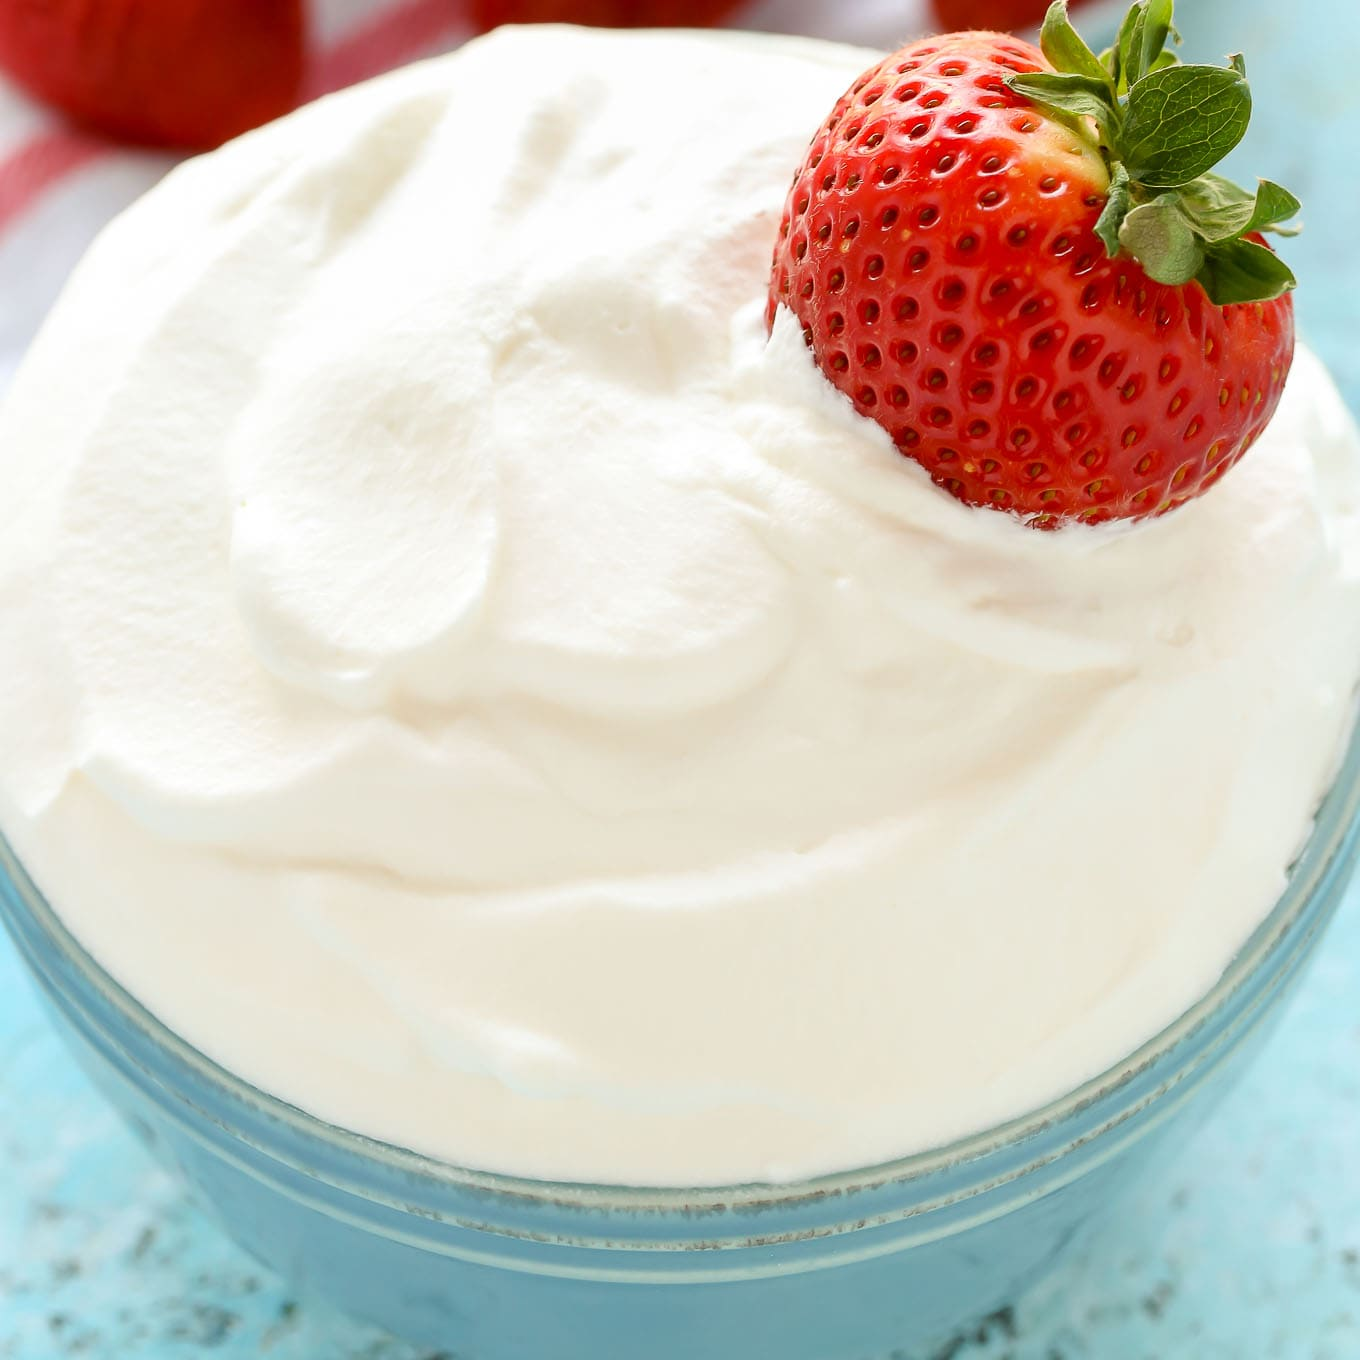 How to make whipping cream for cake at home